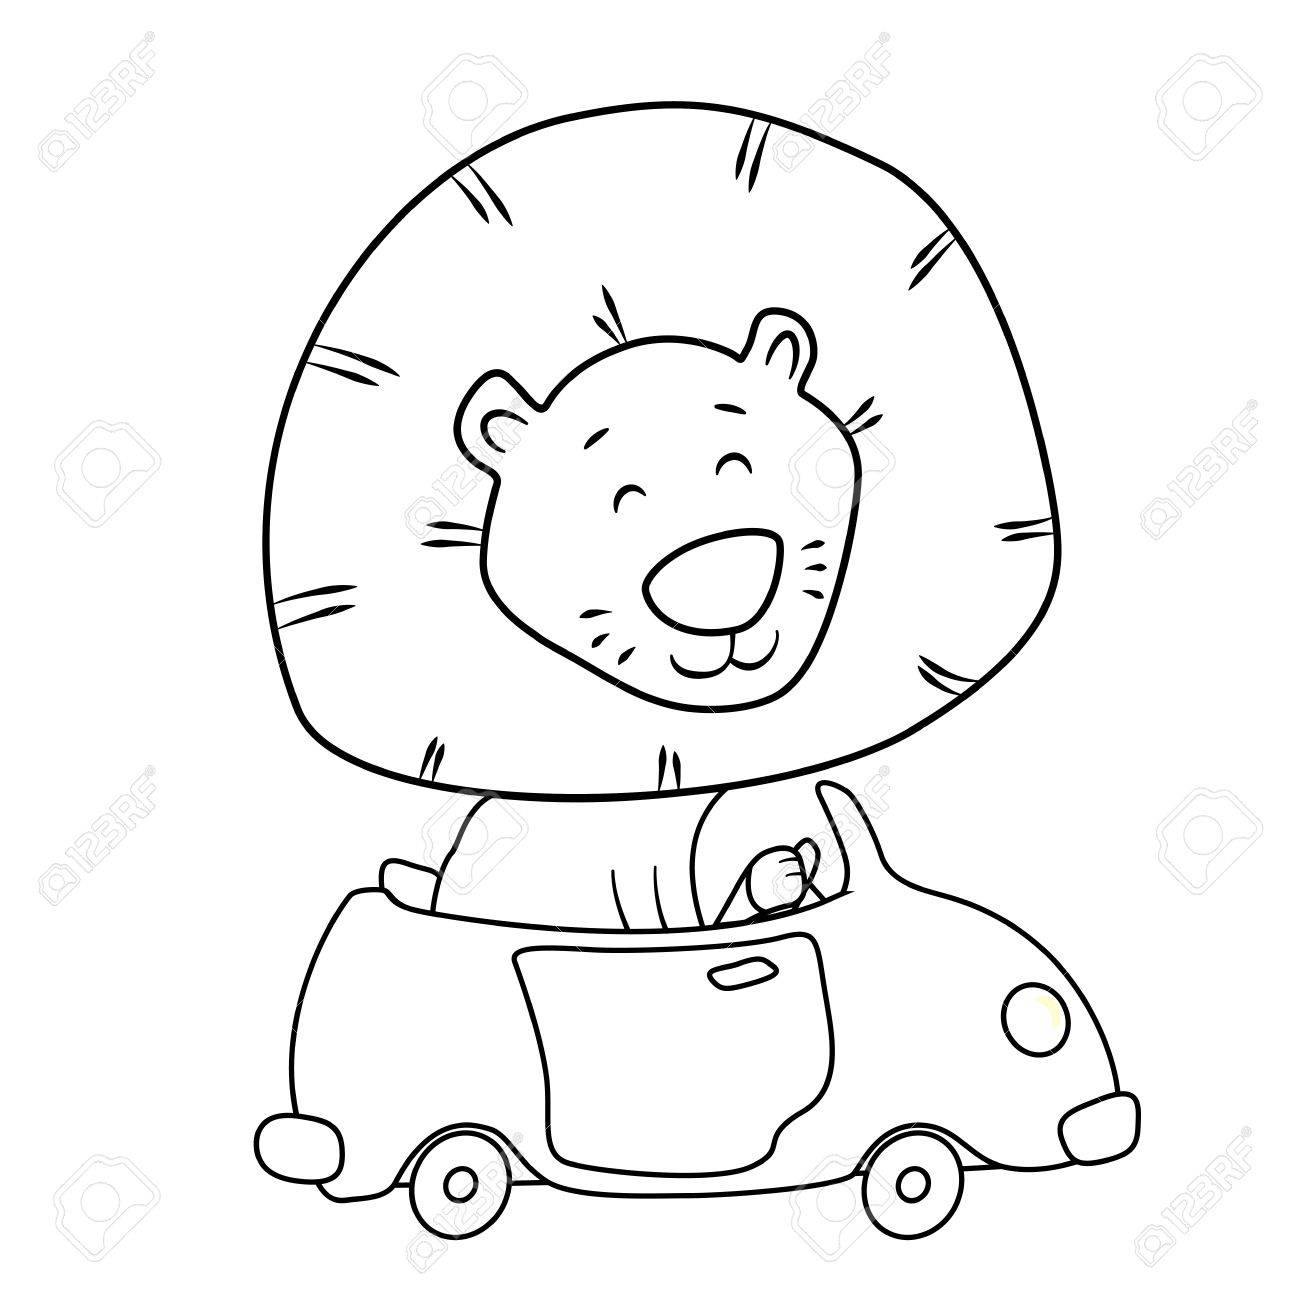 1300x1300 Cute Cartoon Lion Driving A Car Coloring Page For Kids Royalty